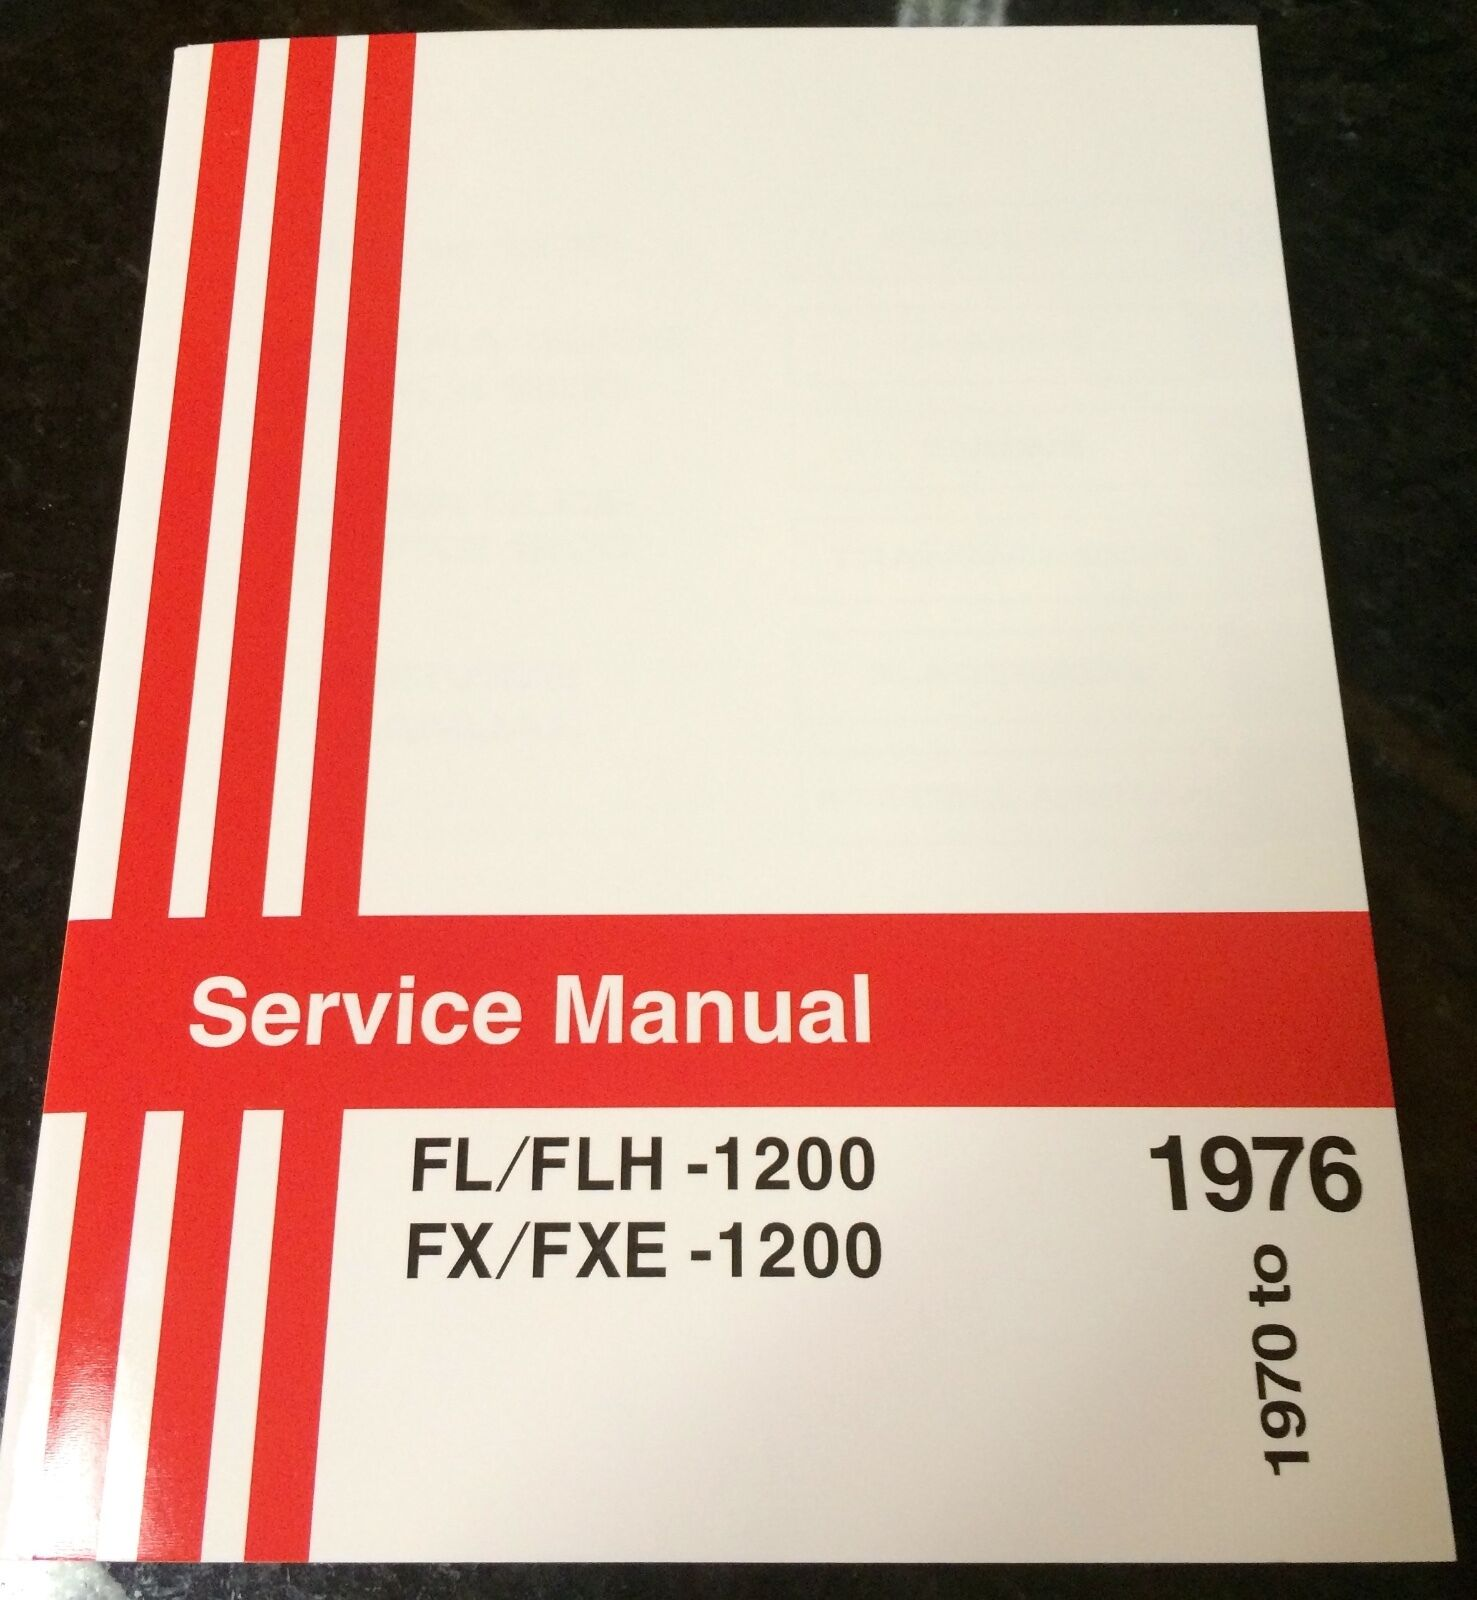 Harley Fl Fx Service Manual 1970 To 1976 Shovelhead Flh Fxe Wiring 77 Ironhead Sportster Xl Diagram Diagrams 1 Of 4only 4 Available